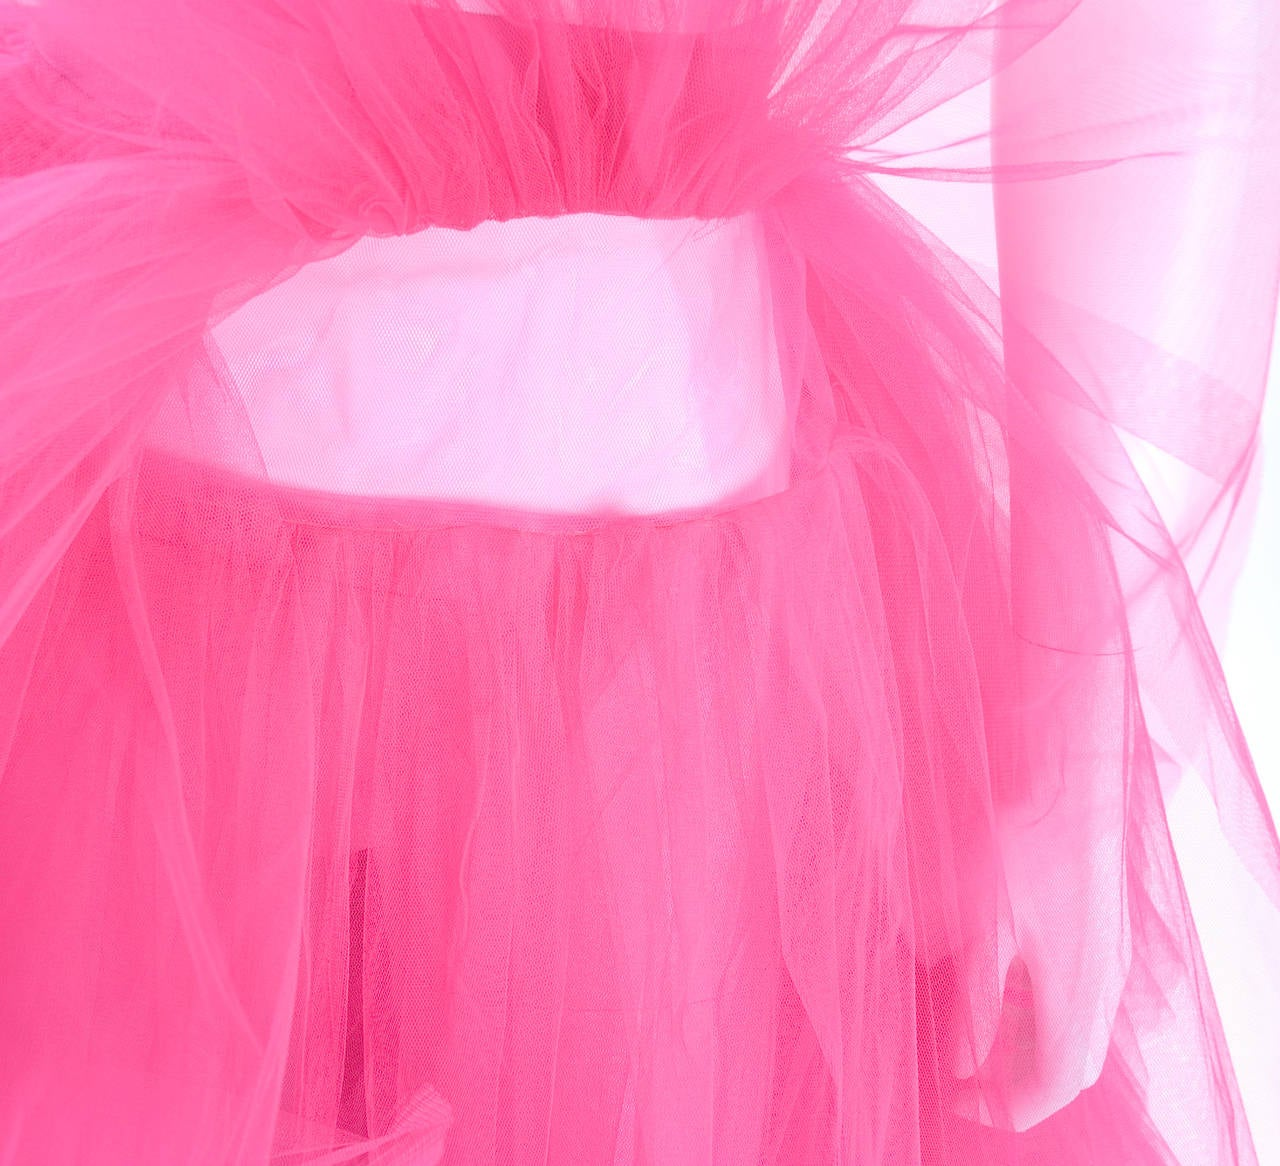 All About Eve Couture by Talbot Runhof Tulle Skirt 8